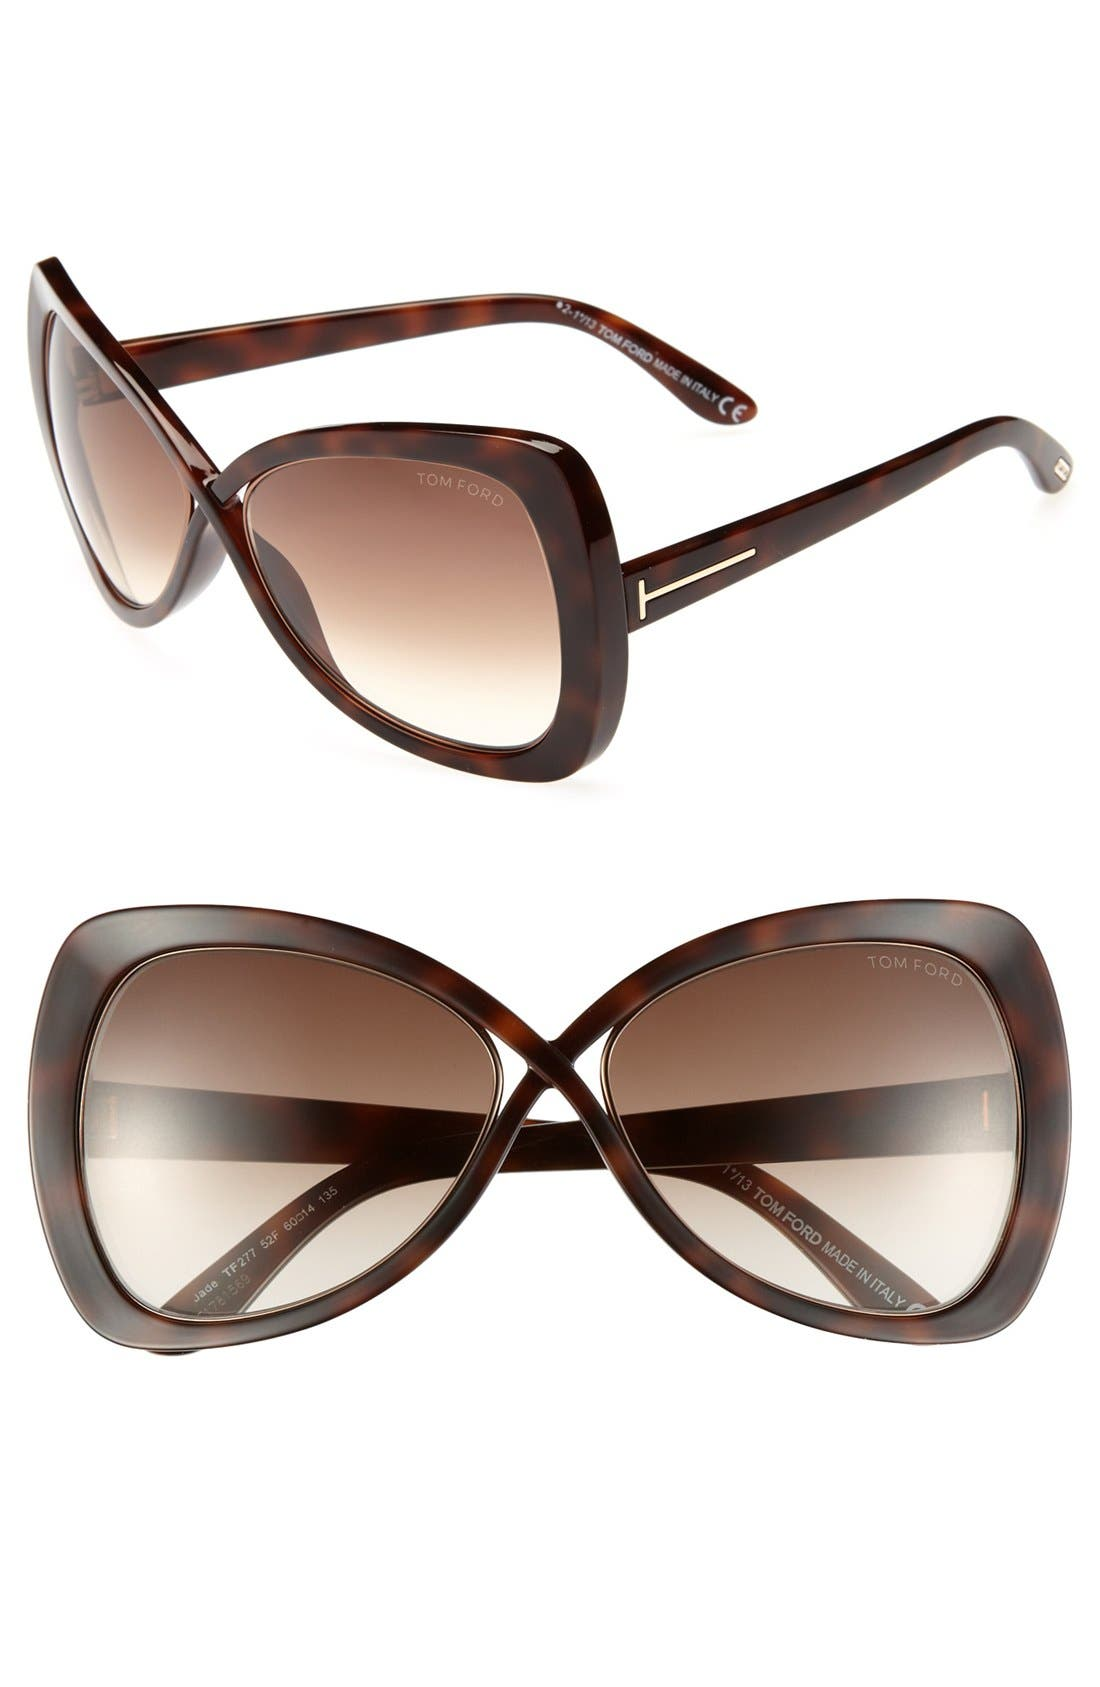 Alternate Image 1 Selected - Tom Ford 60mm 'Jade' Sunglasses